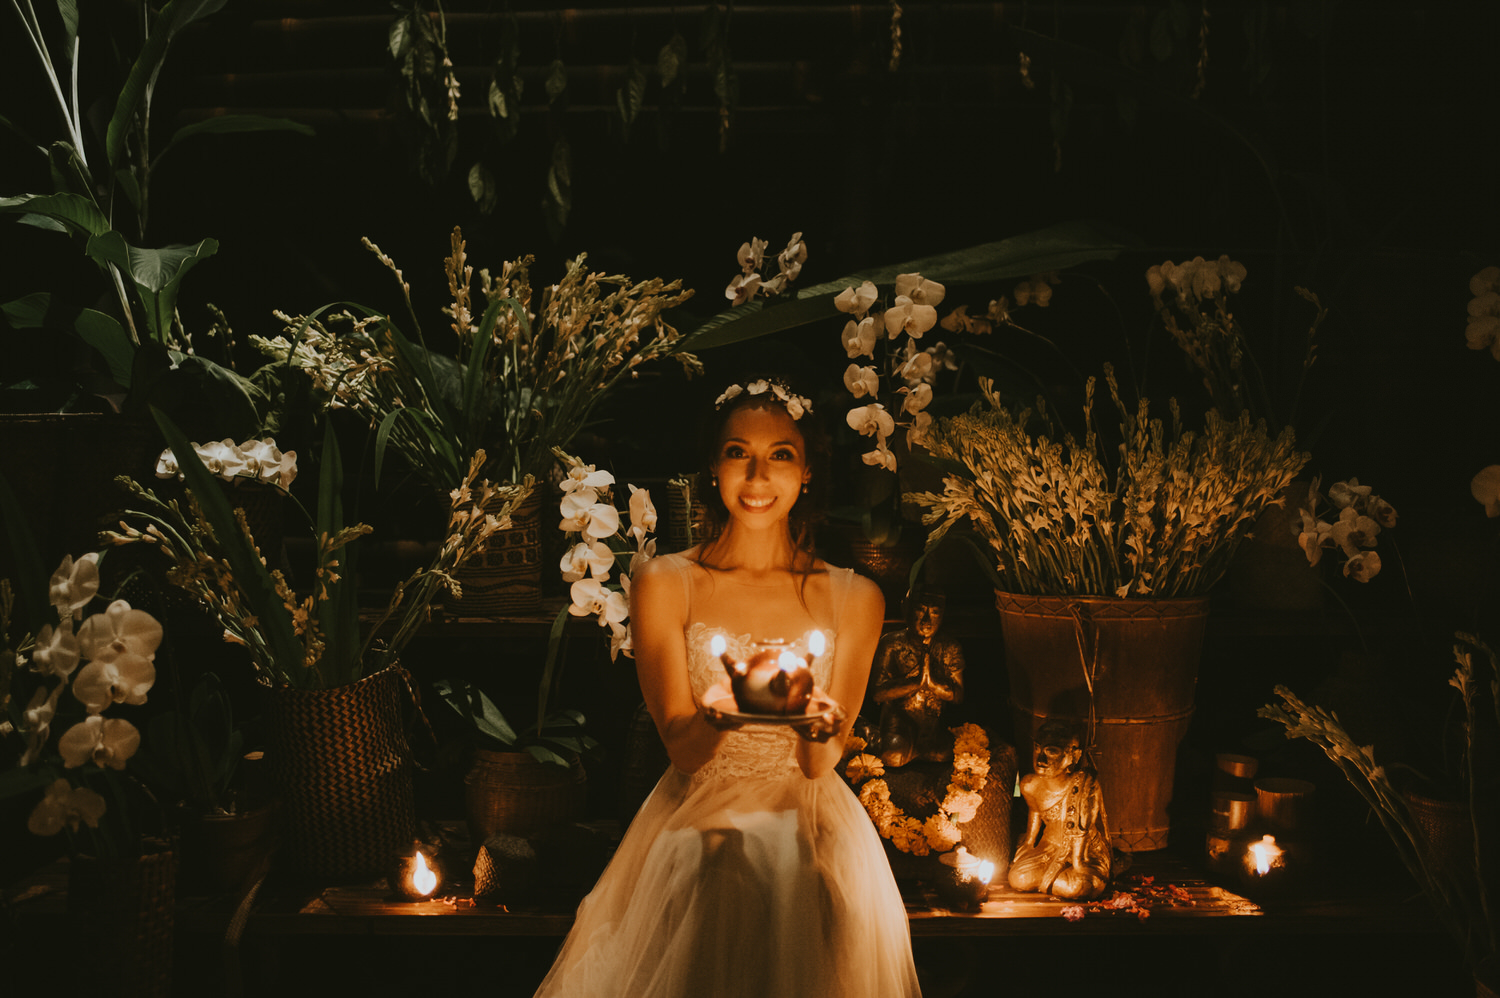 bali-wedding-ubud-wedding-wedding-destination-diktatphotography-kadek-artayasa-elaine-and-glenn-147